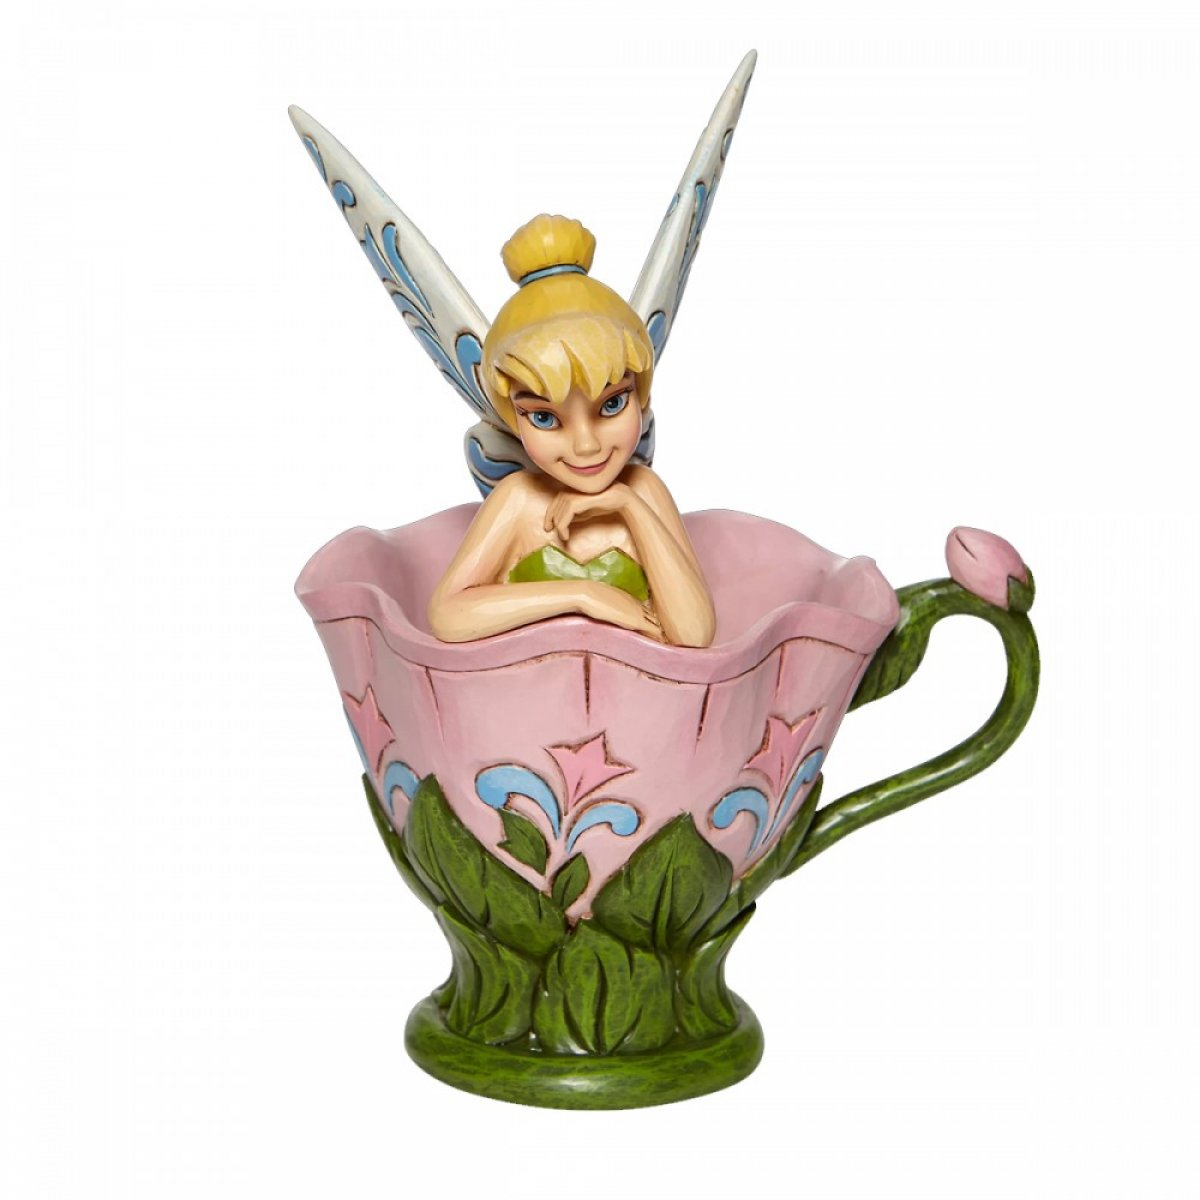 Disney Traditions - Peter Pan : Figurine Tink sitting in the flower